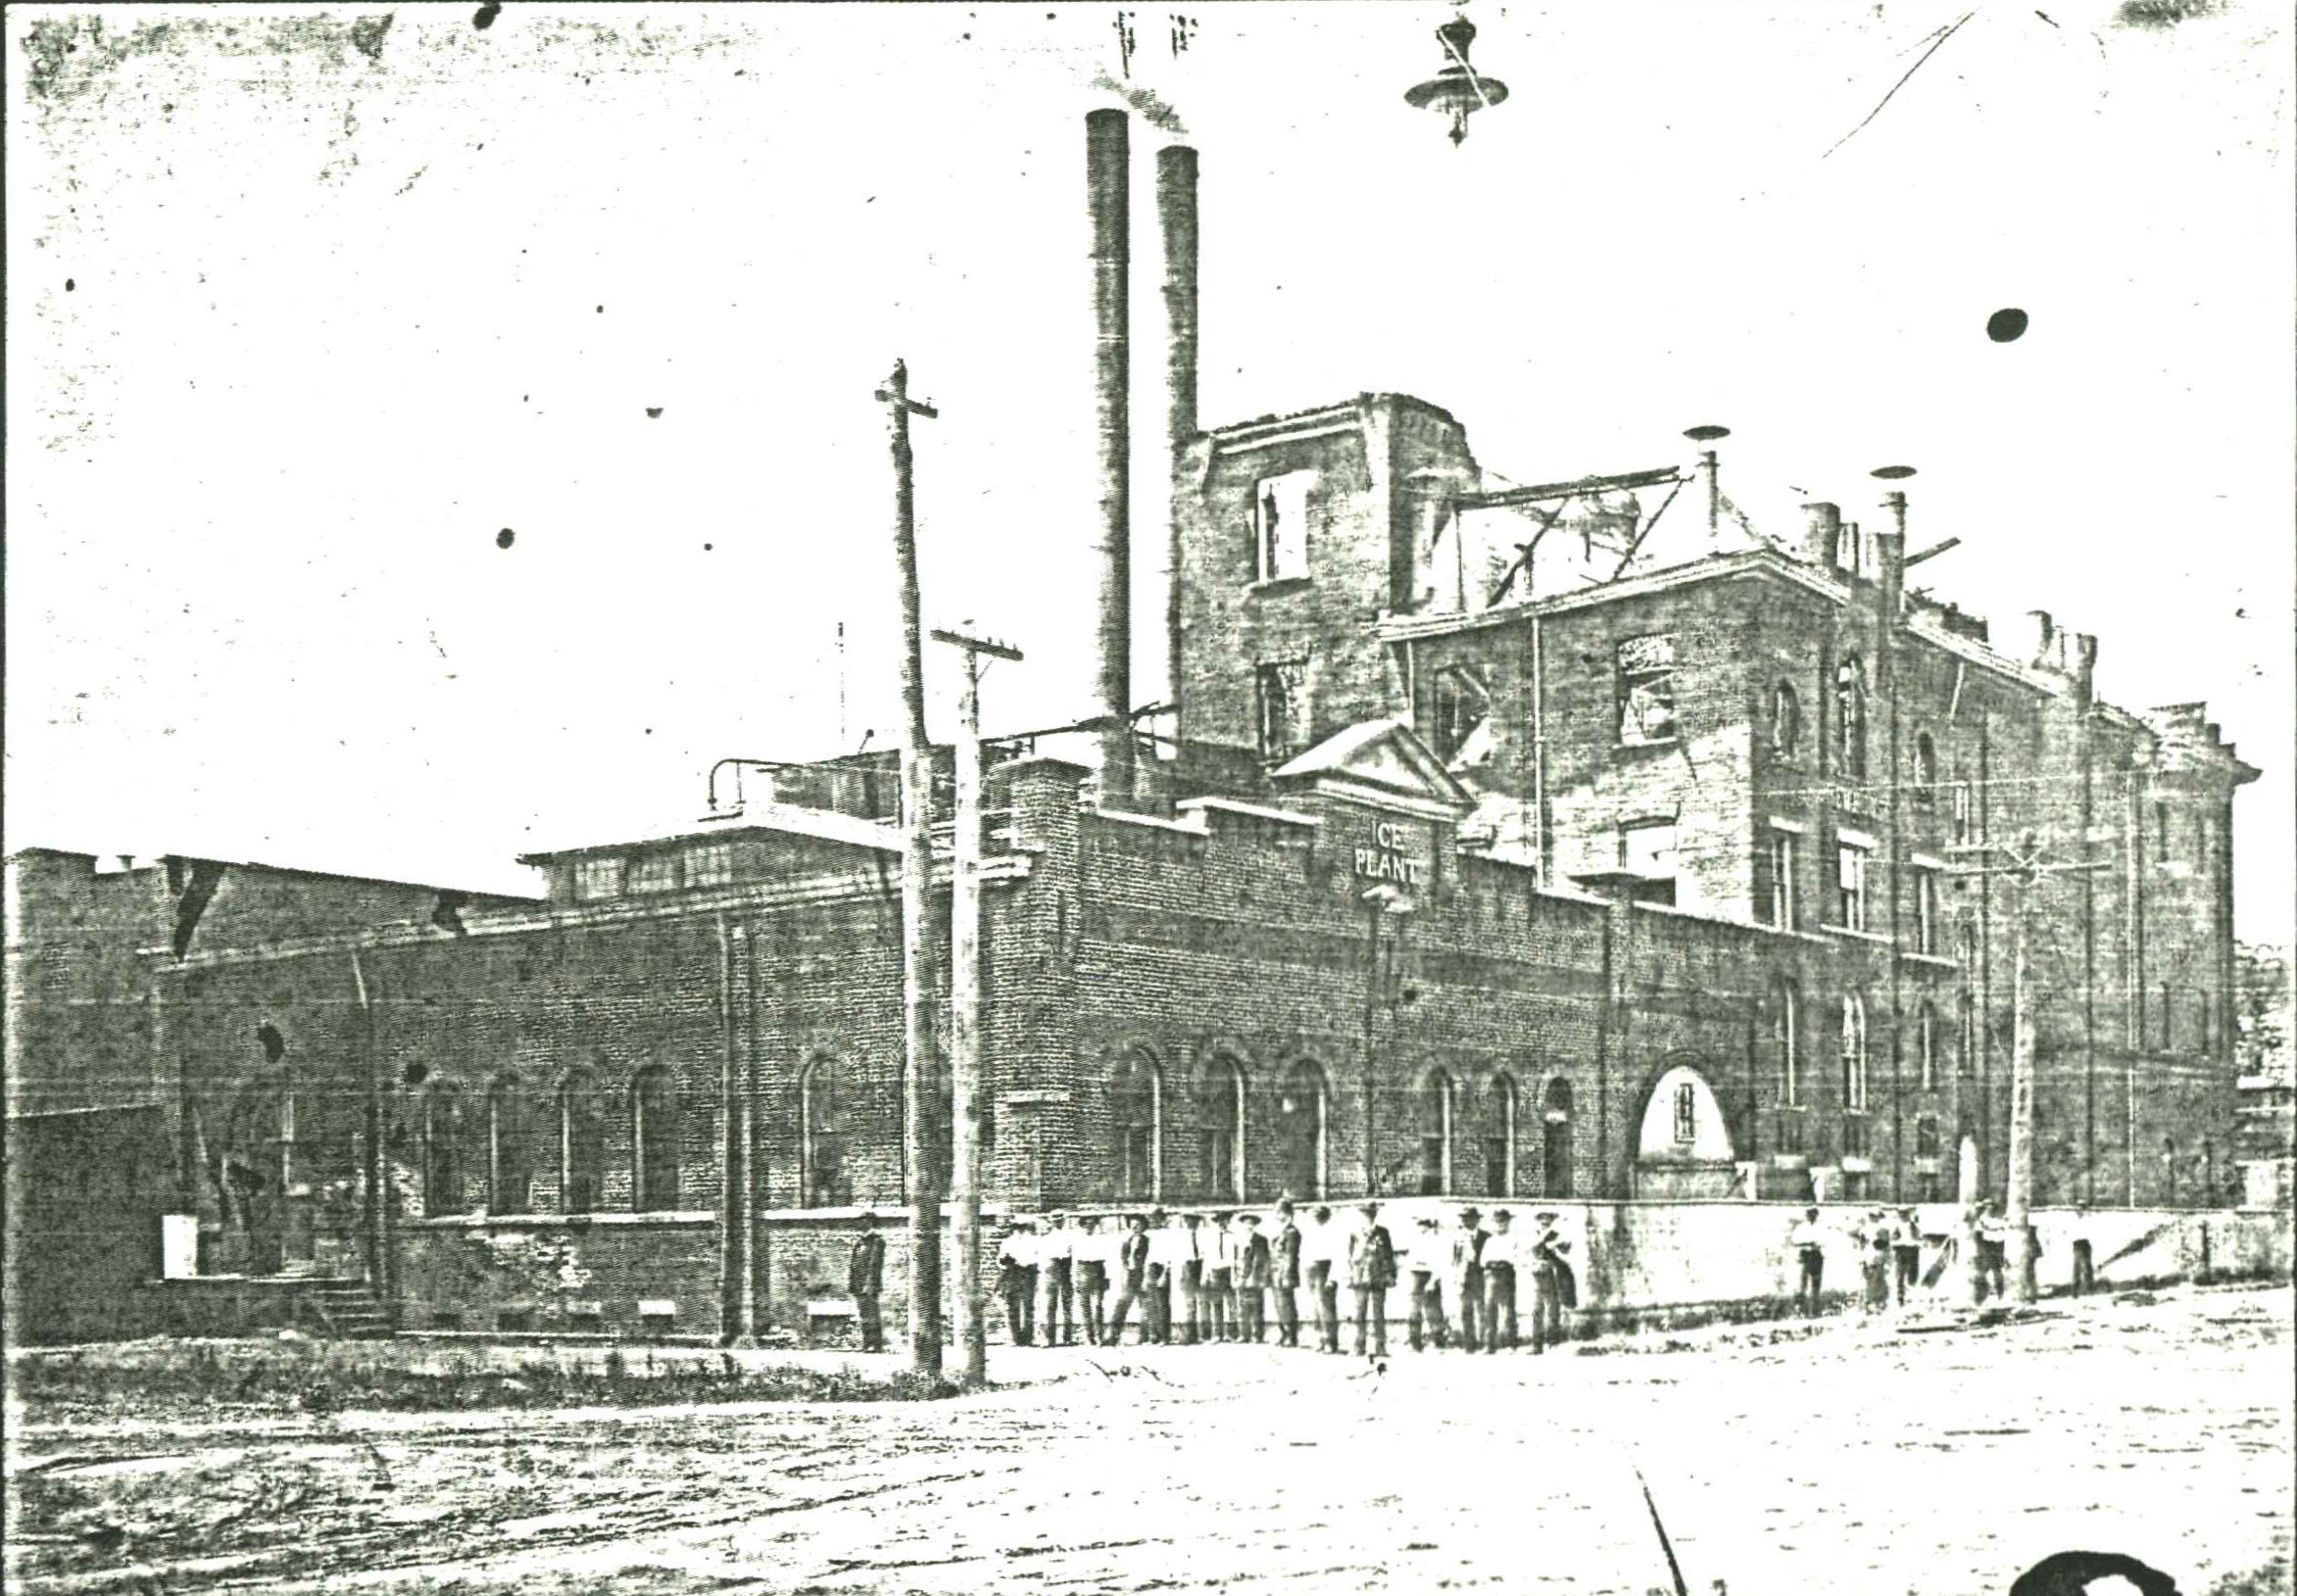 The brewery sometime in the early 1900s. Image courtesy of the West Huntington Public Library.